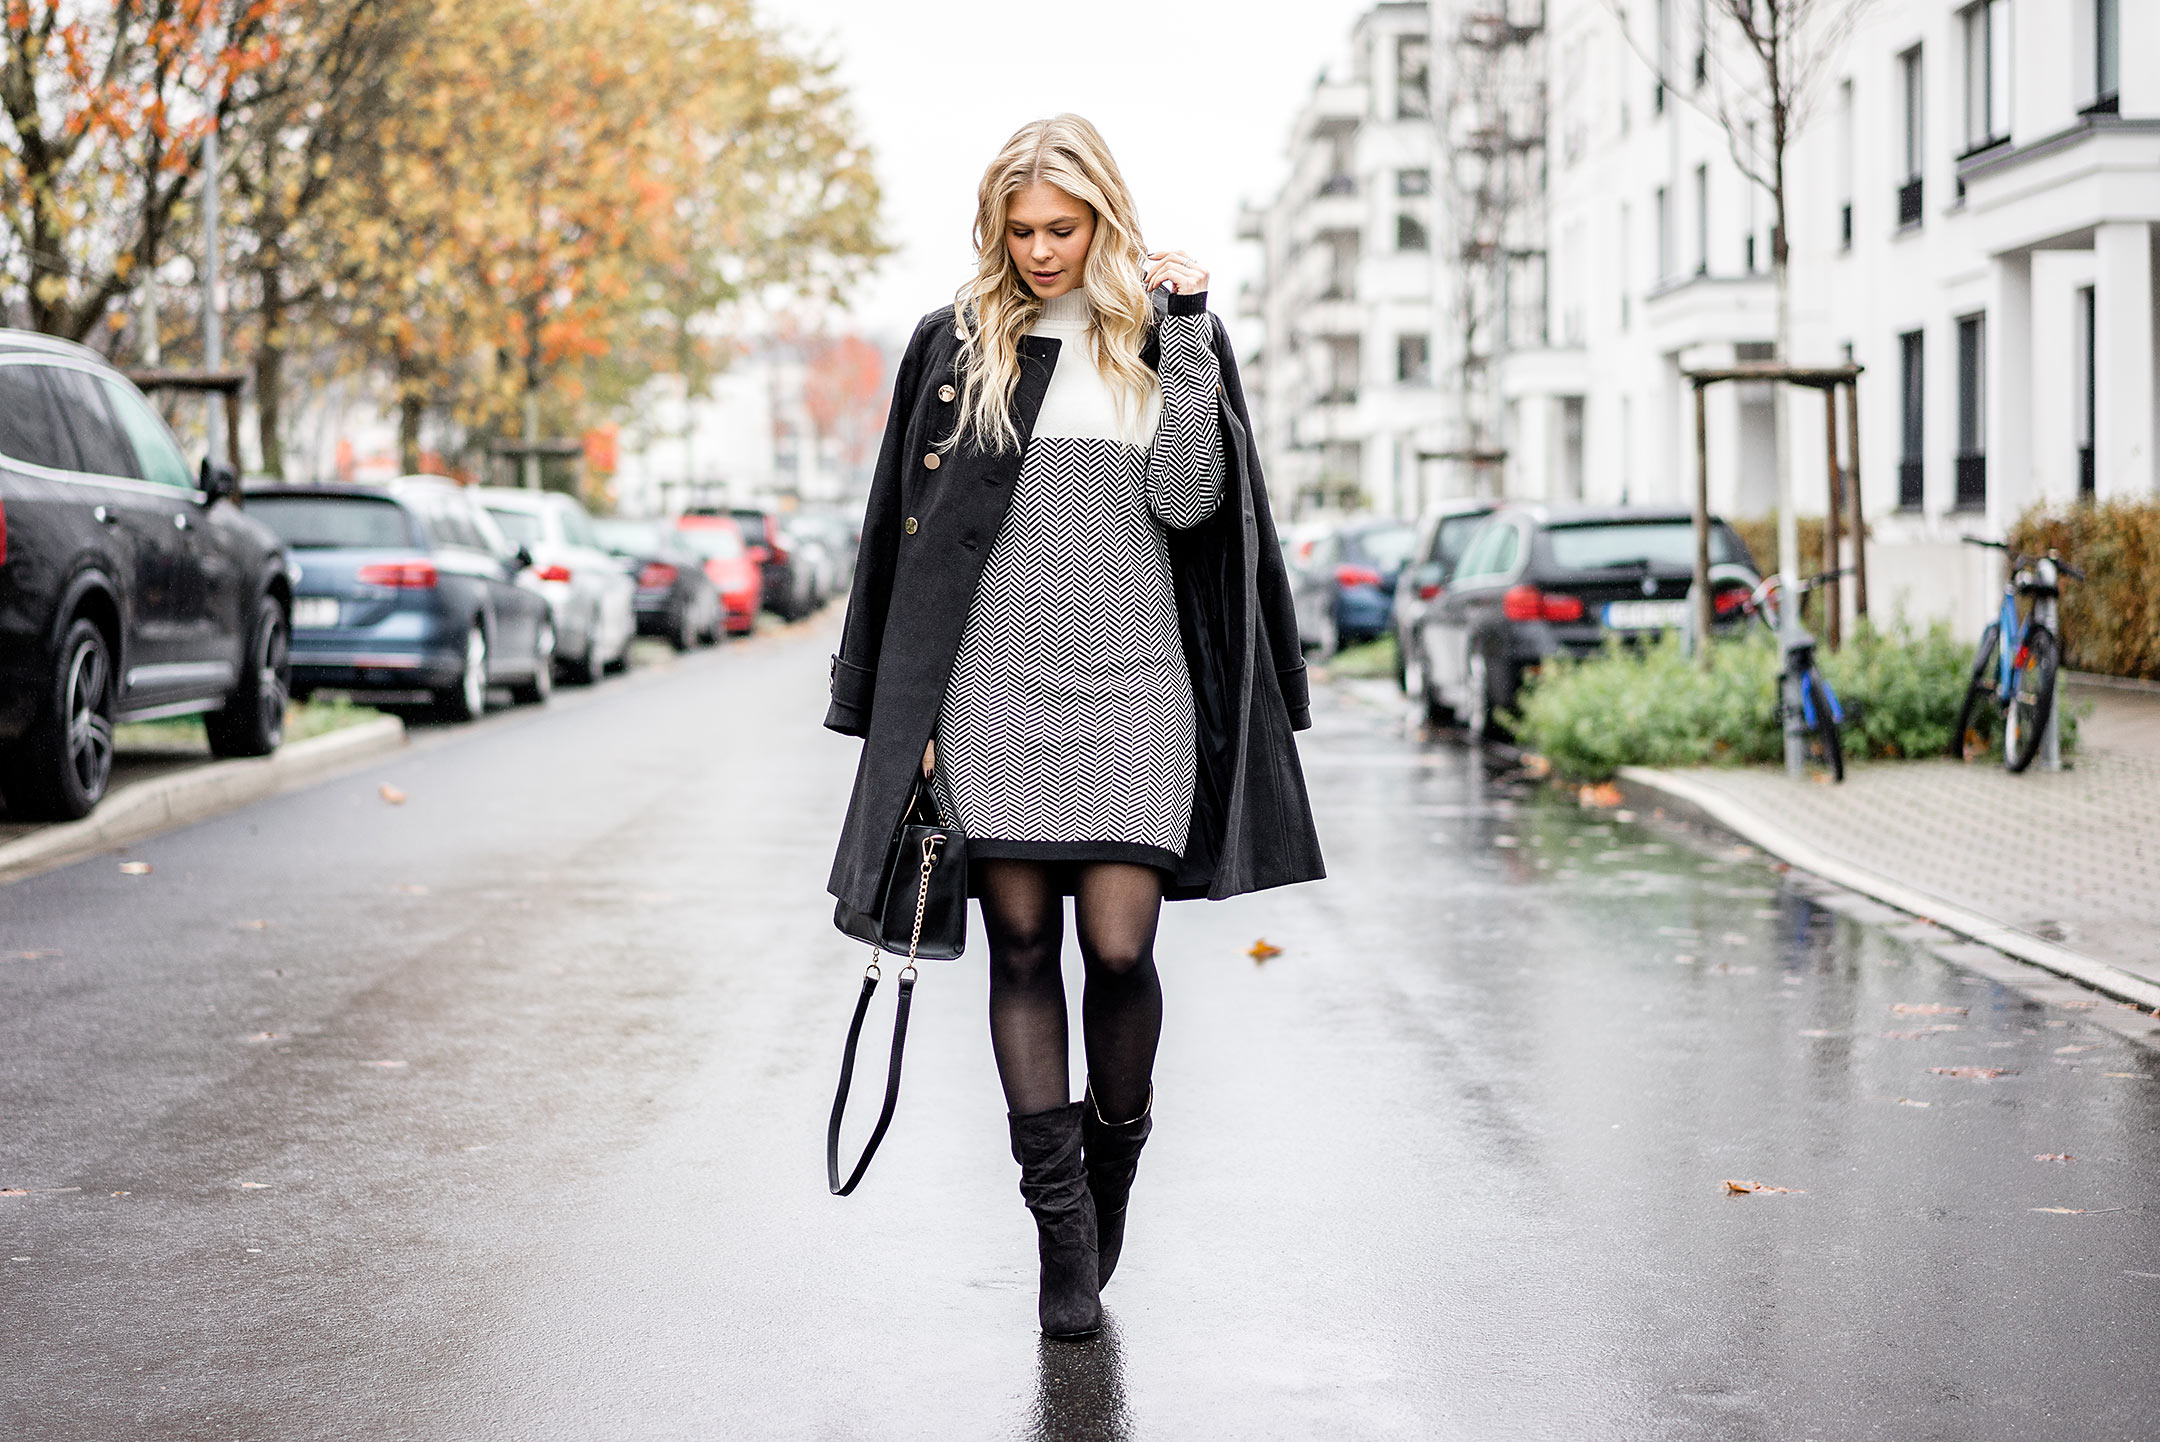 Winter Outfit Streetstyle Kleid Uniform Mantel Boots Sunnyinga Blog